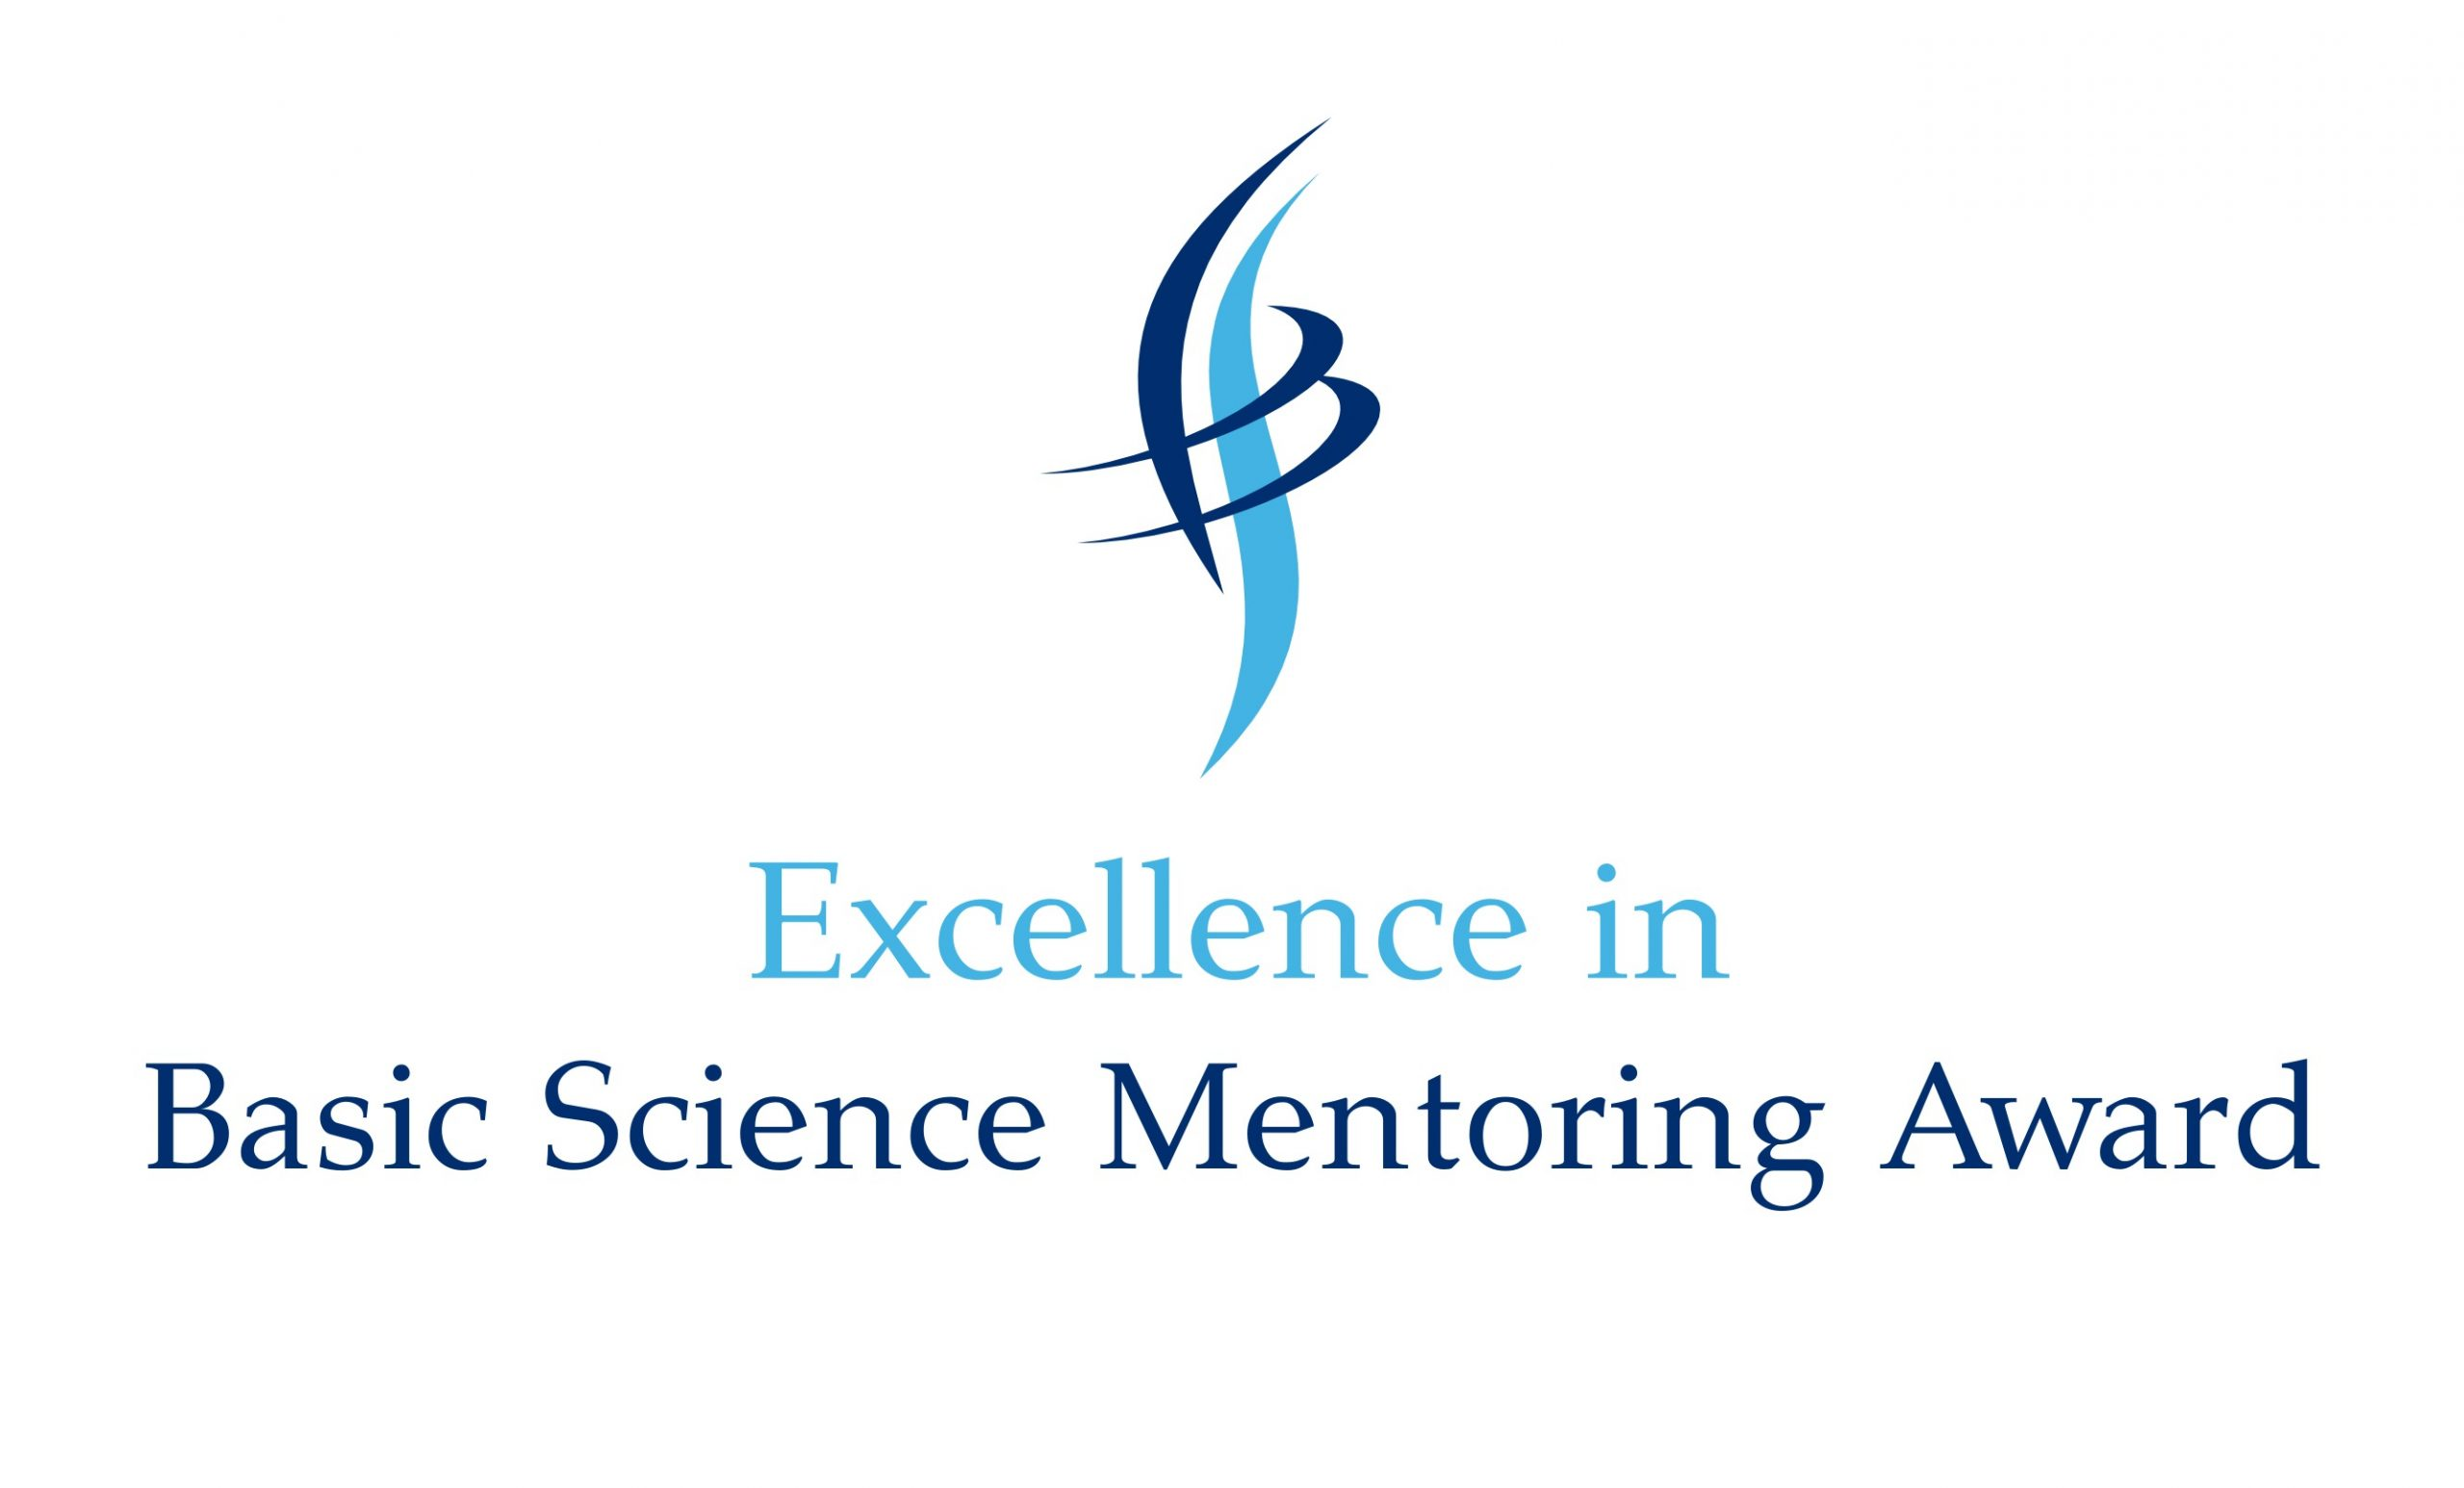 Excellence in Basic Science Mentoring Award logo